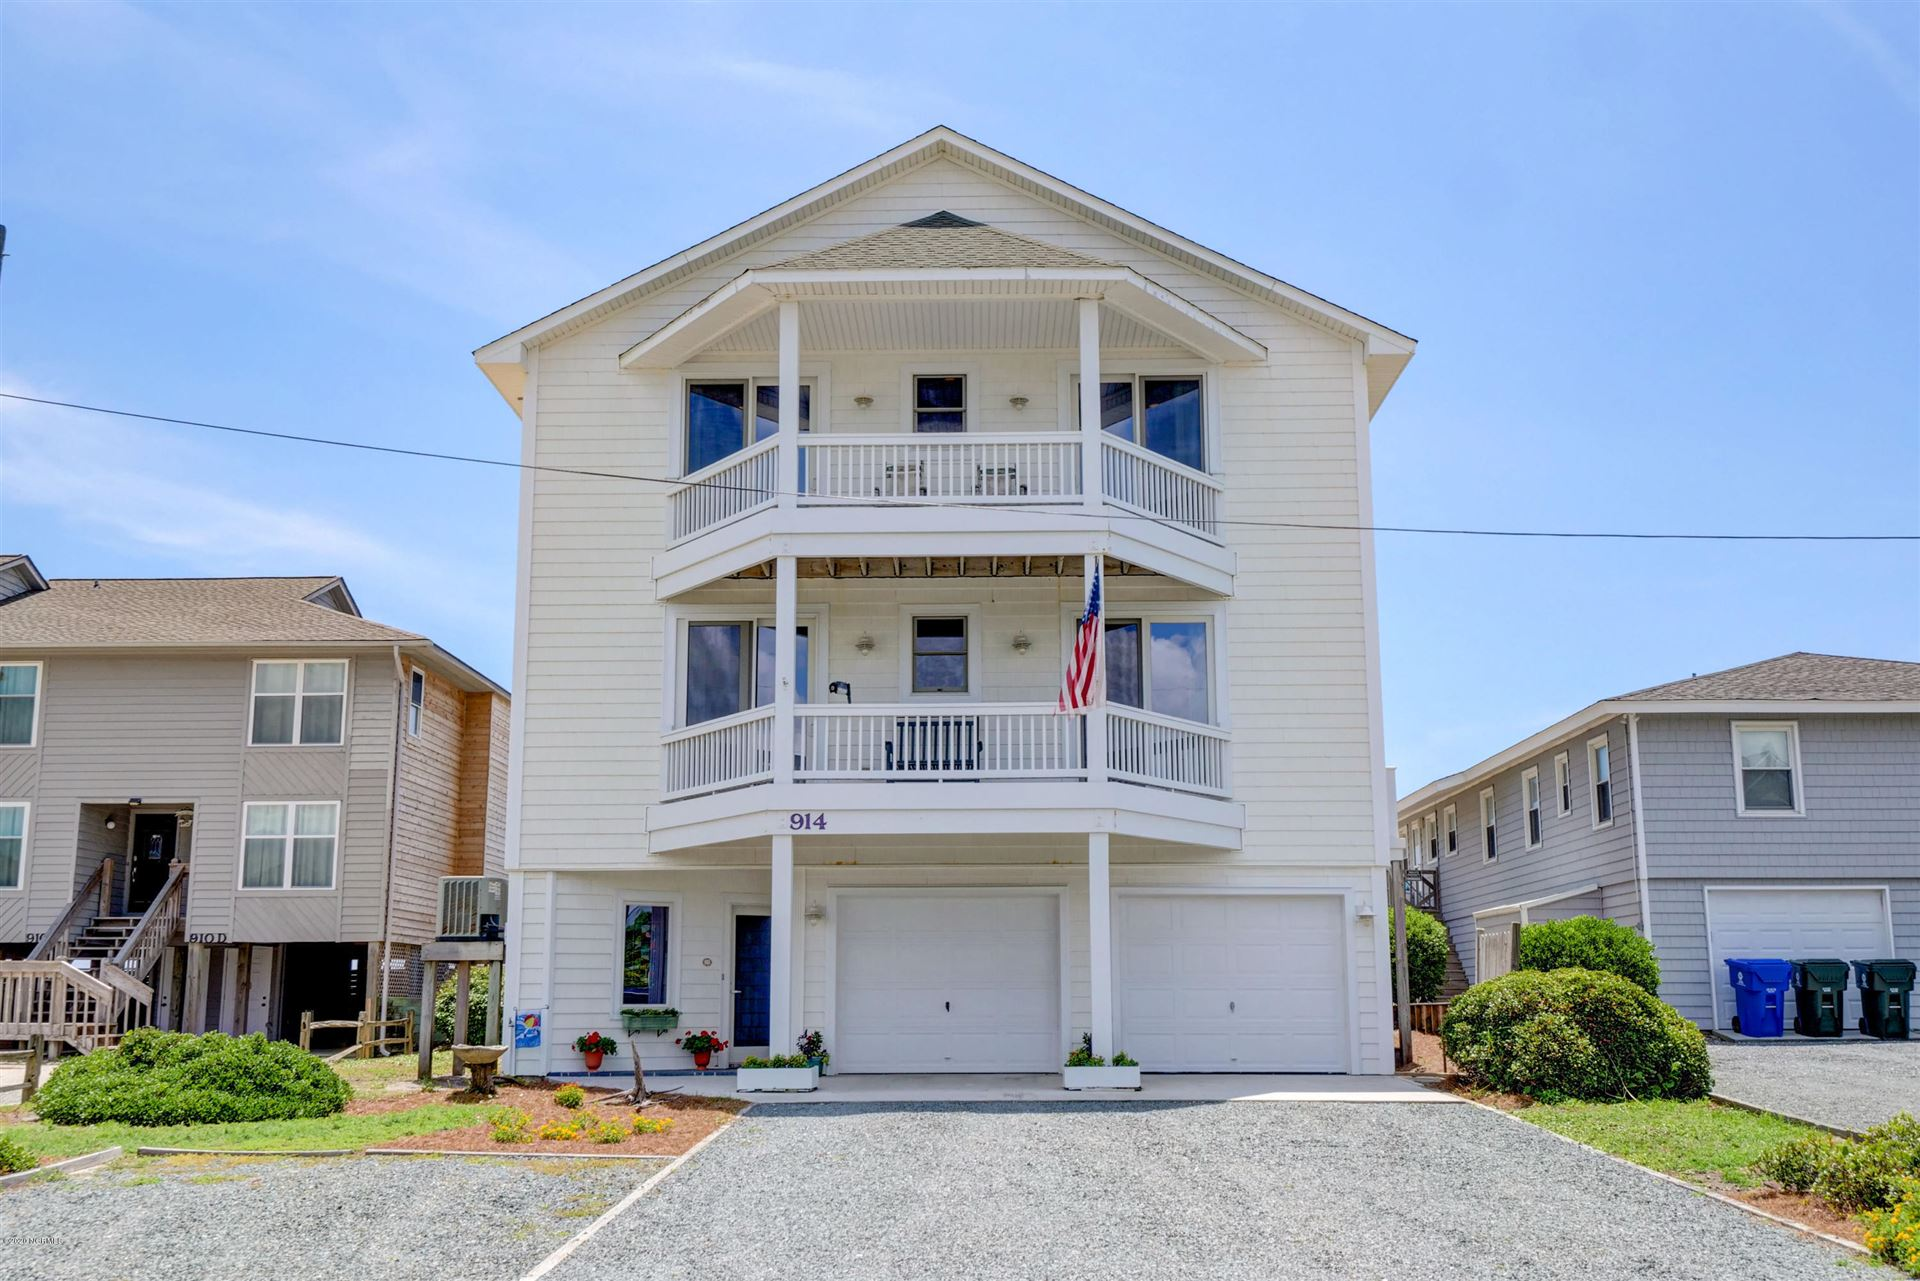 914 S Shore Drive, Surf City, NC 28445 - MLS#: 100224155